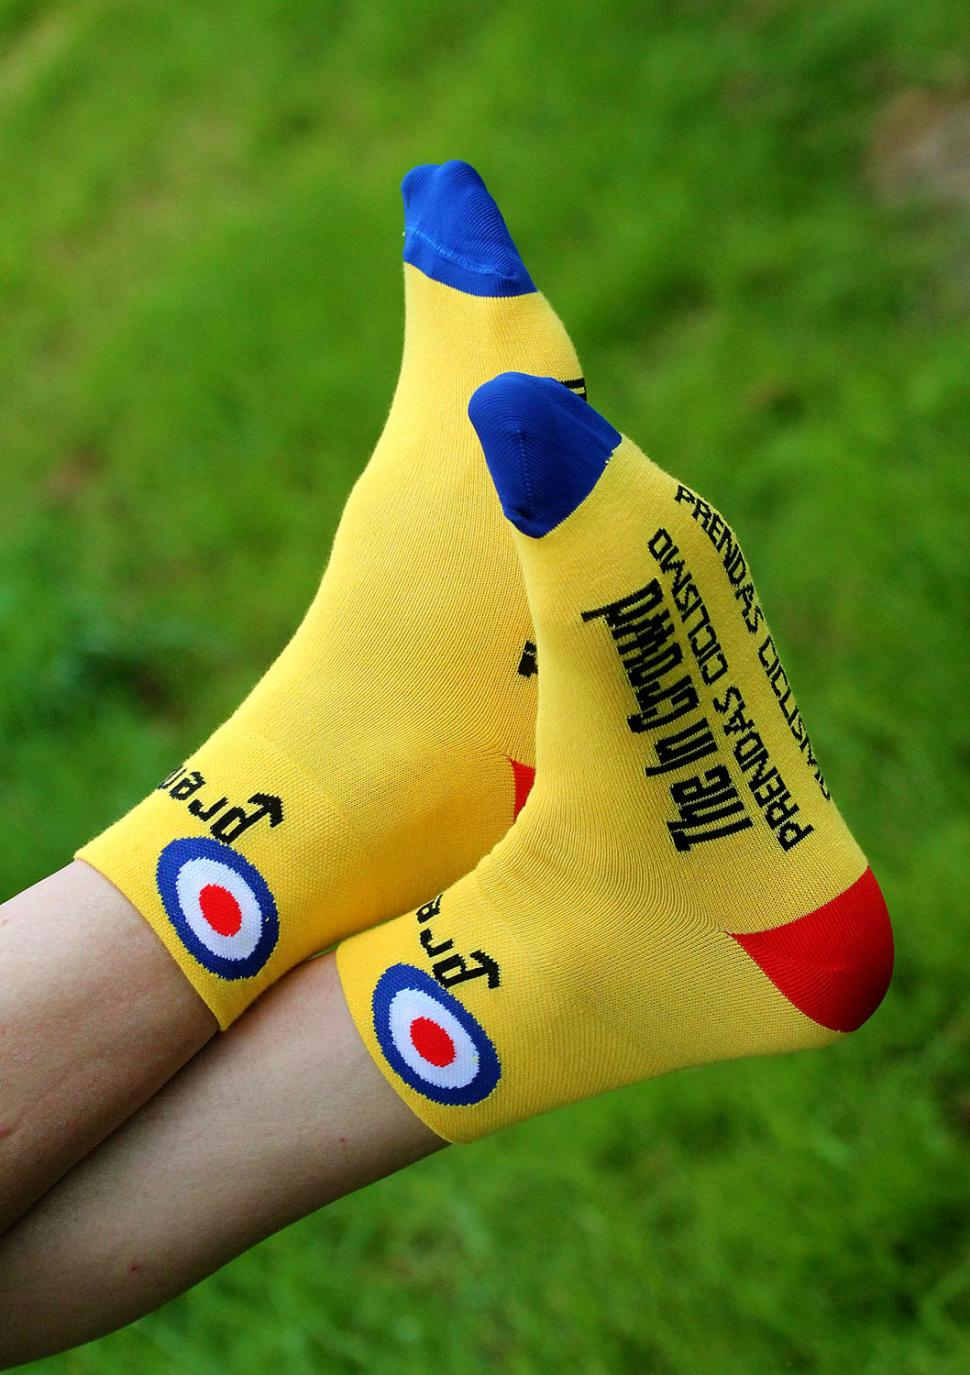 Prendas Ciclismo Yellow Mod In The Crowd socks